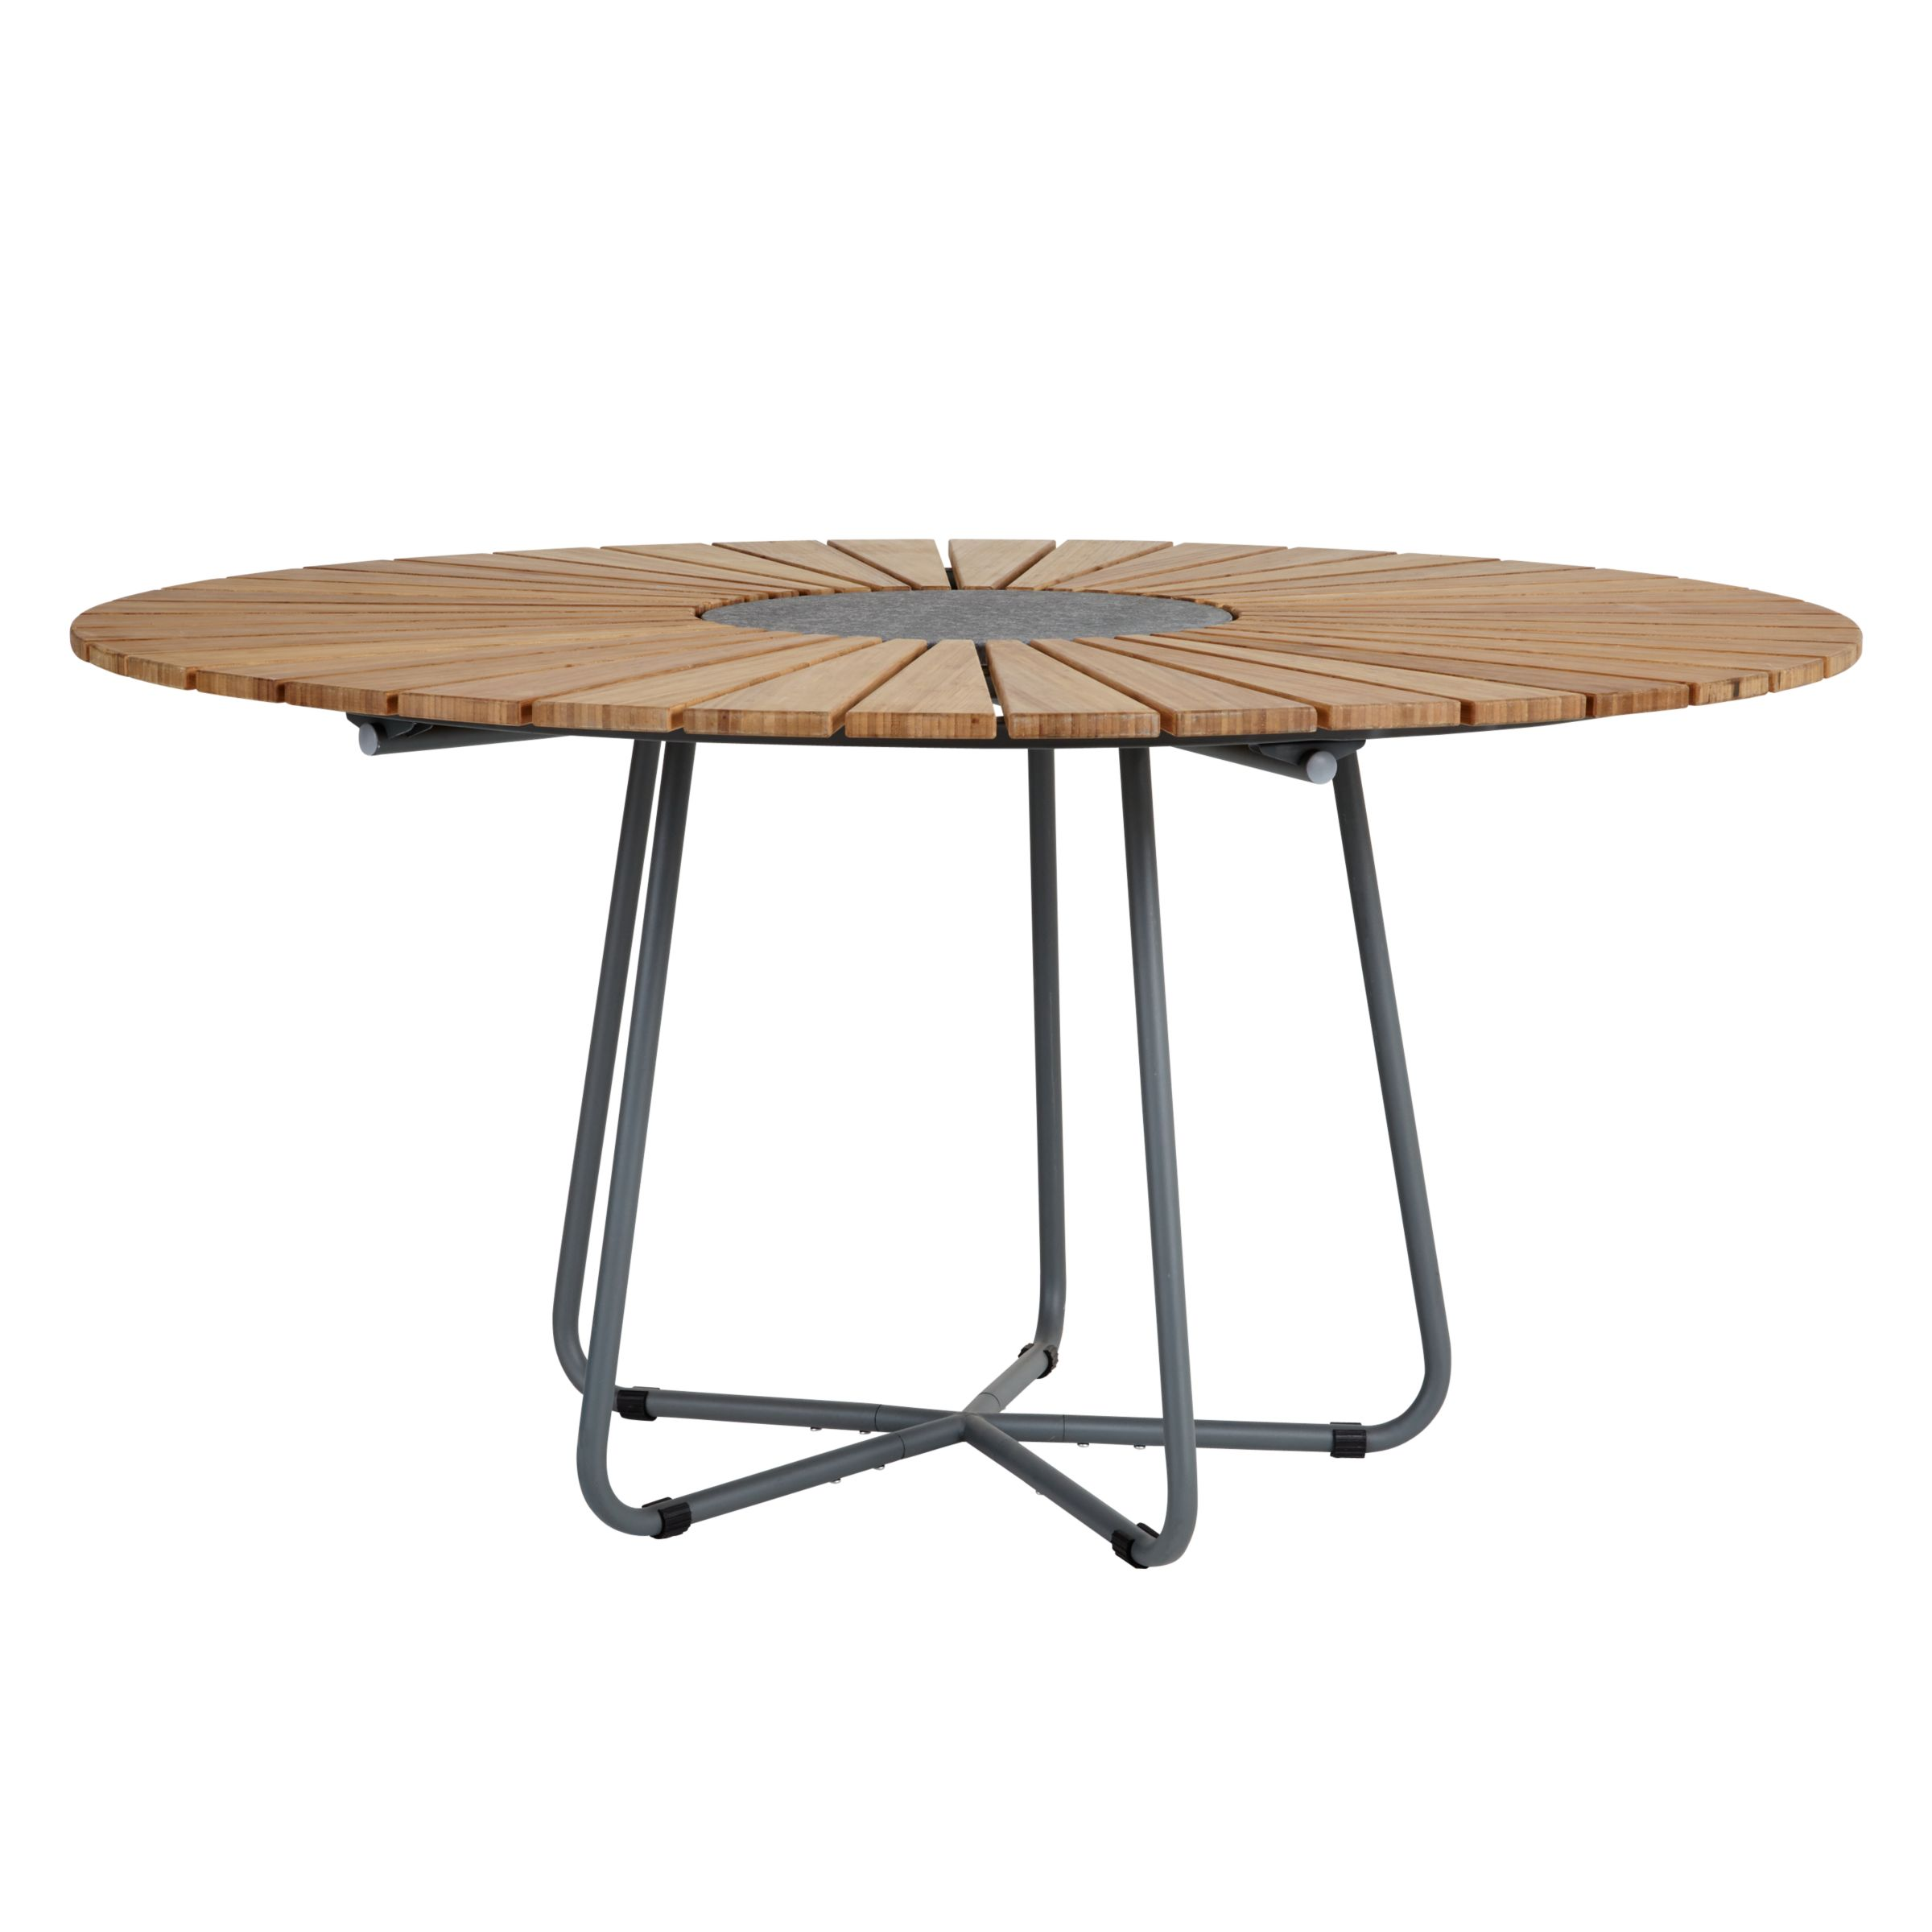 Sheds amp garden furniture for Table 22 cannes